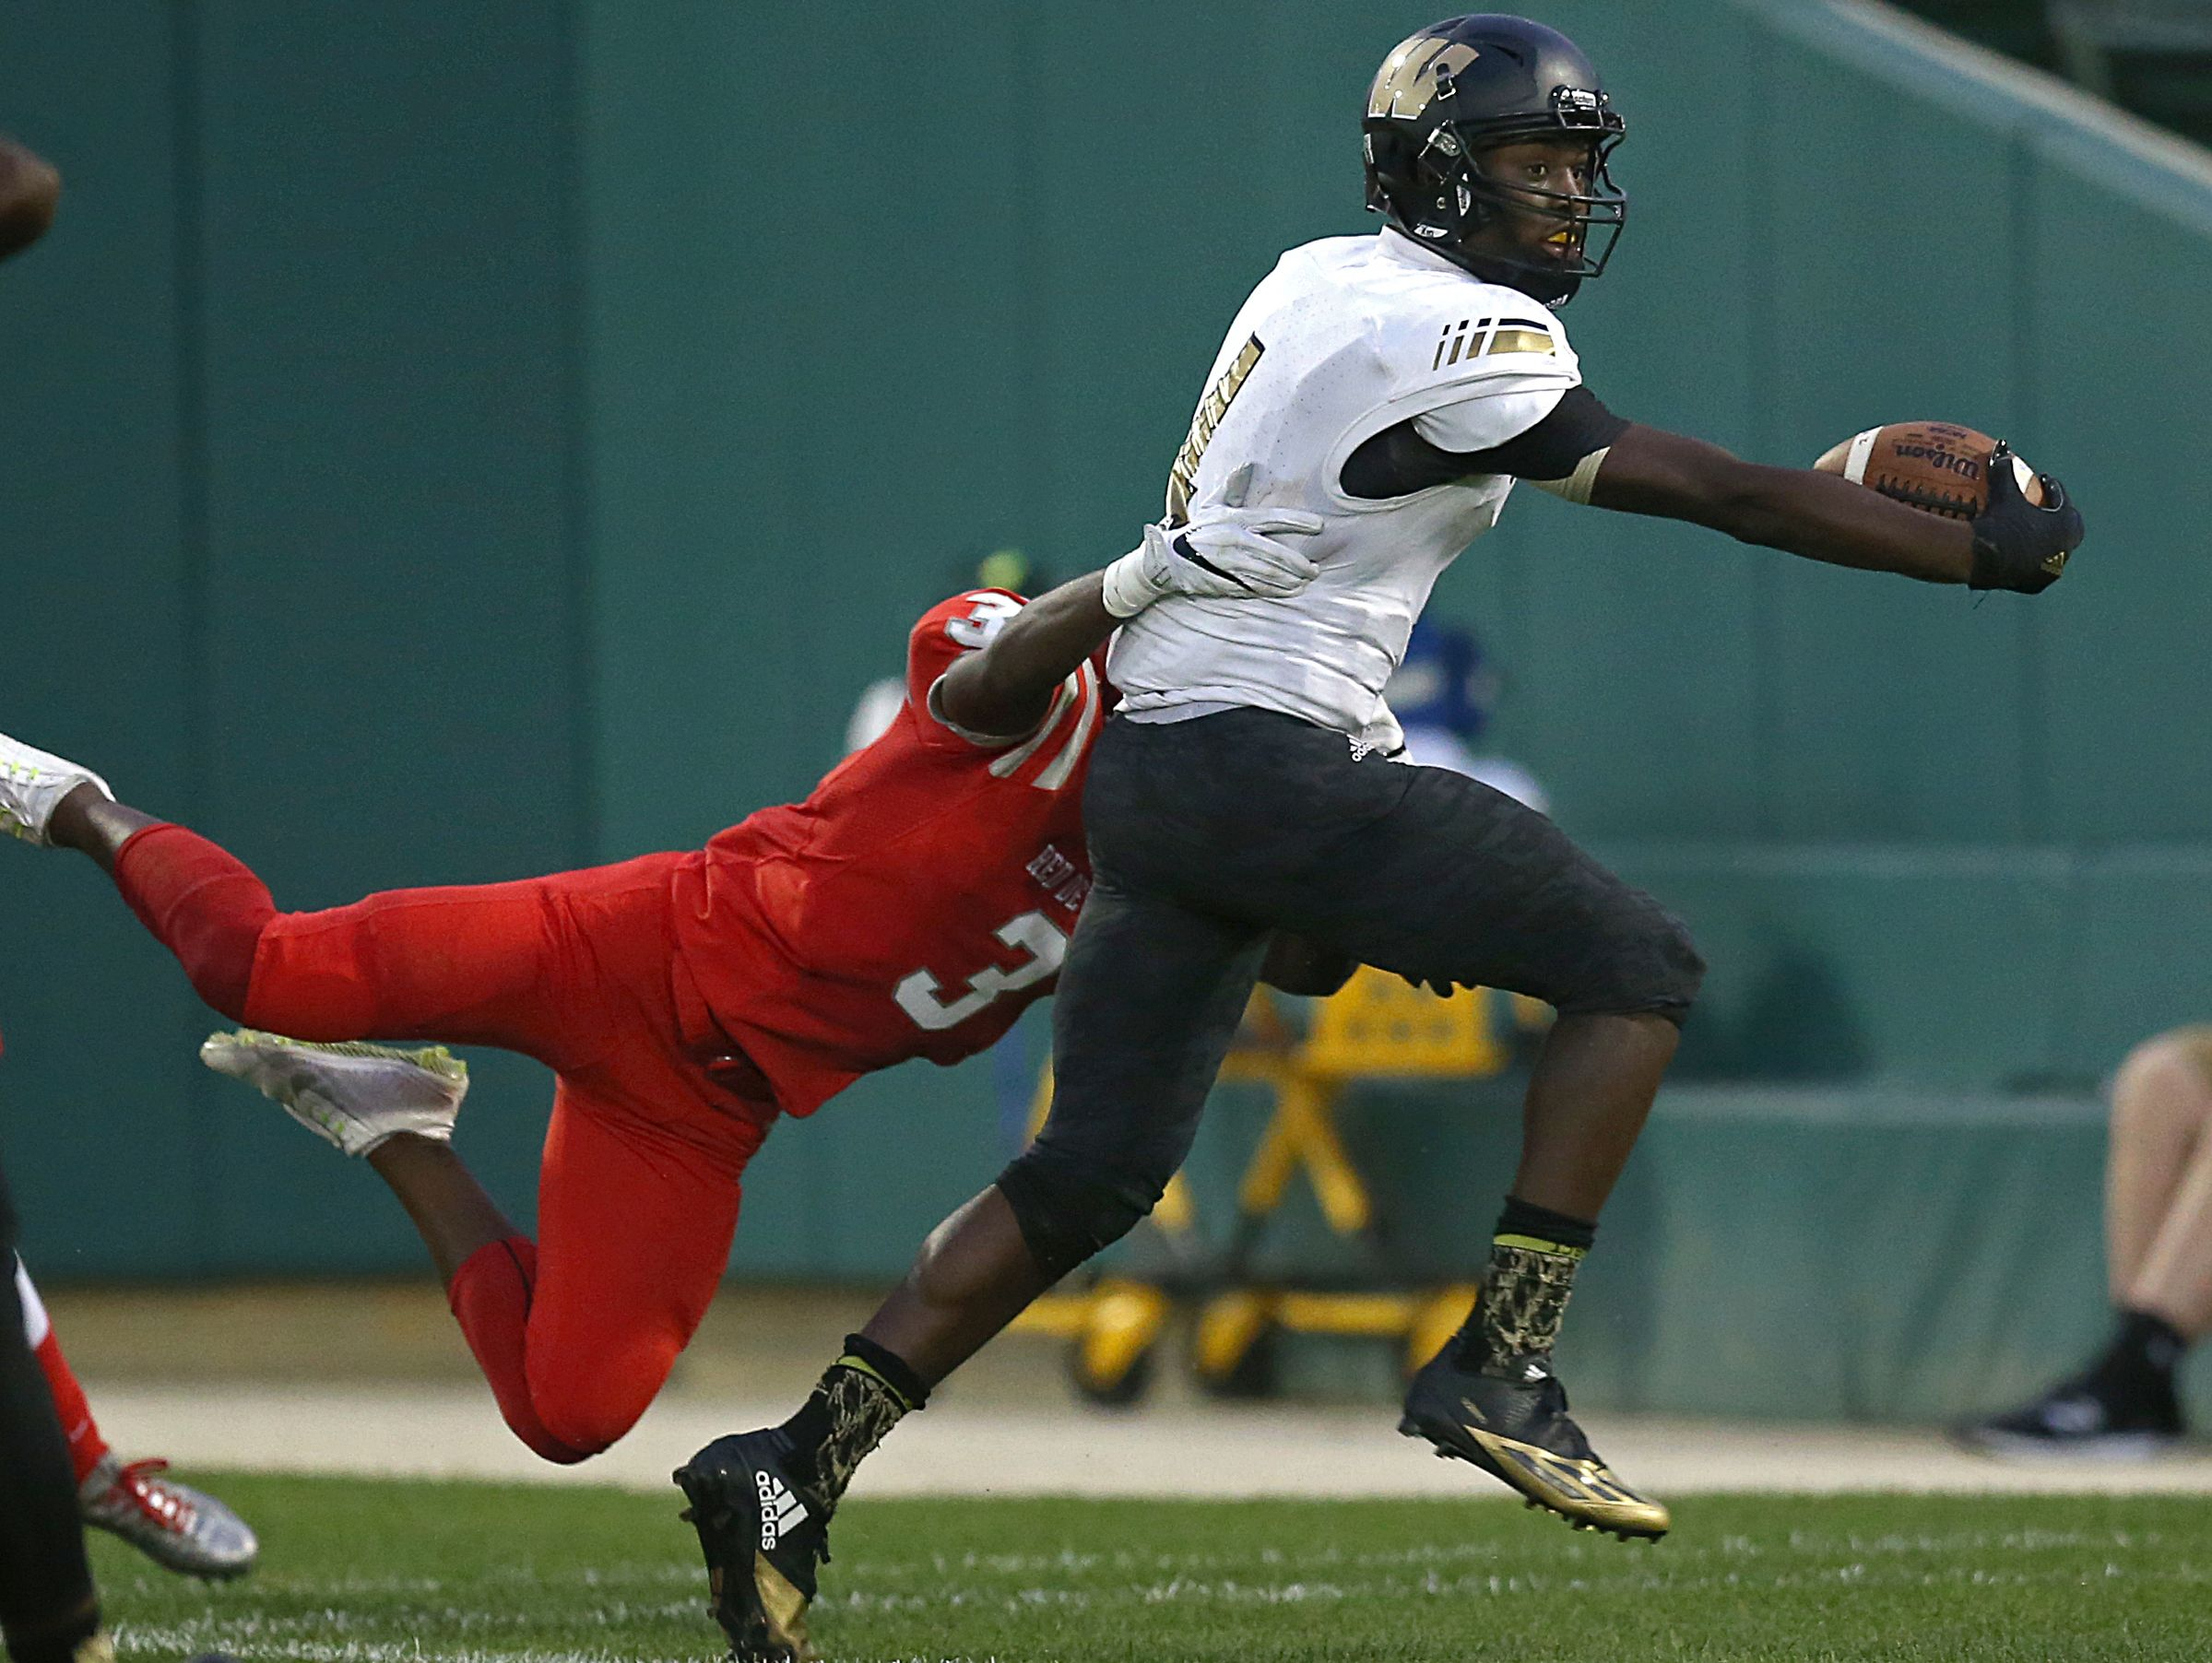 Warren Central Warriors wide receiver David Bell (4) runs in a touchdown despite defense from Pike Red Devils wide receiver Michael Adams (3) during first half action of the Gridiron Classic at Victory Field, Indianapolis, Friday, September 23, 2016.